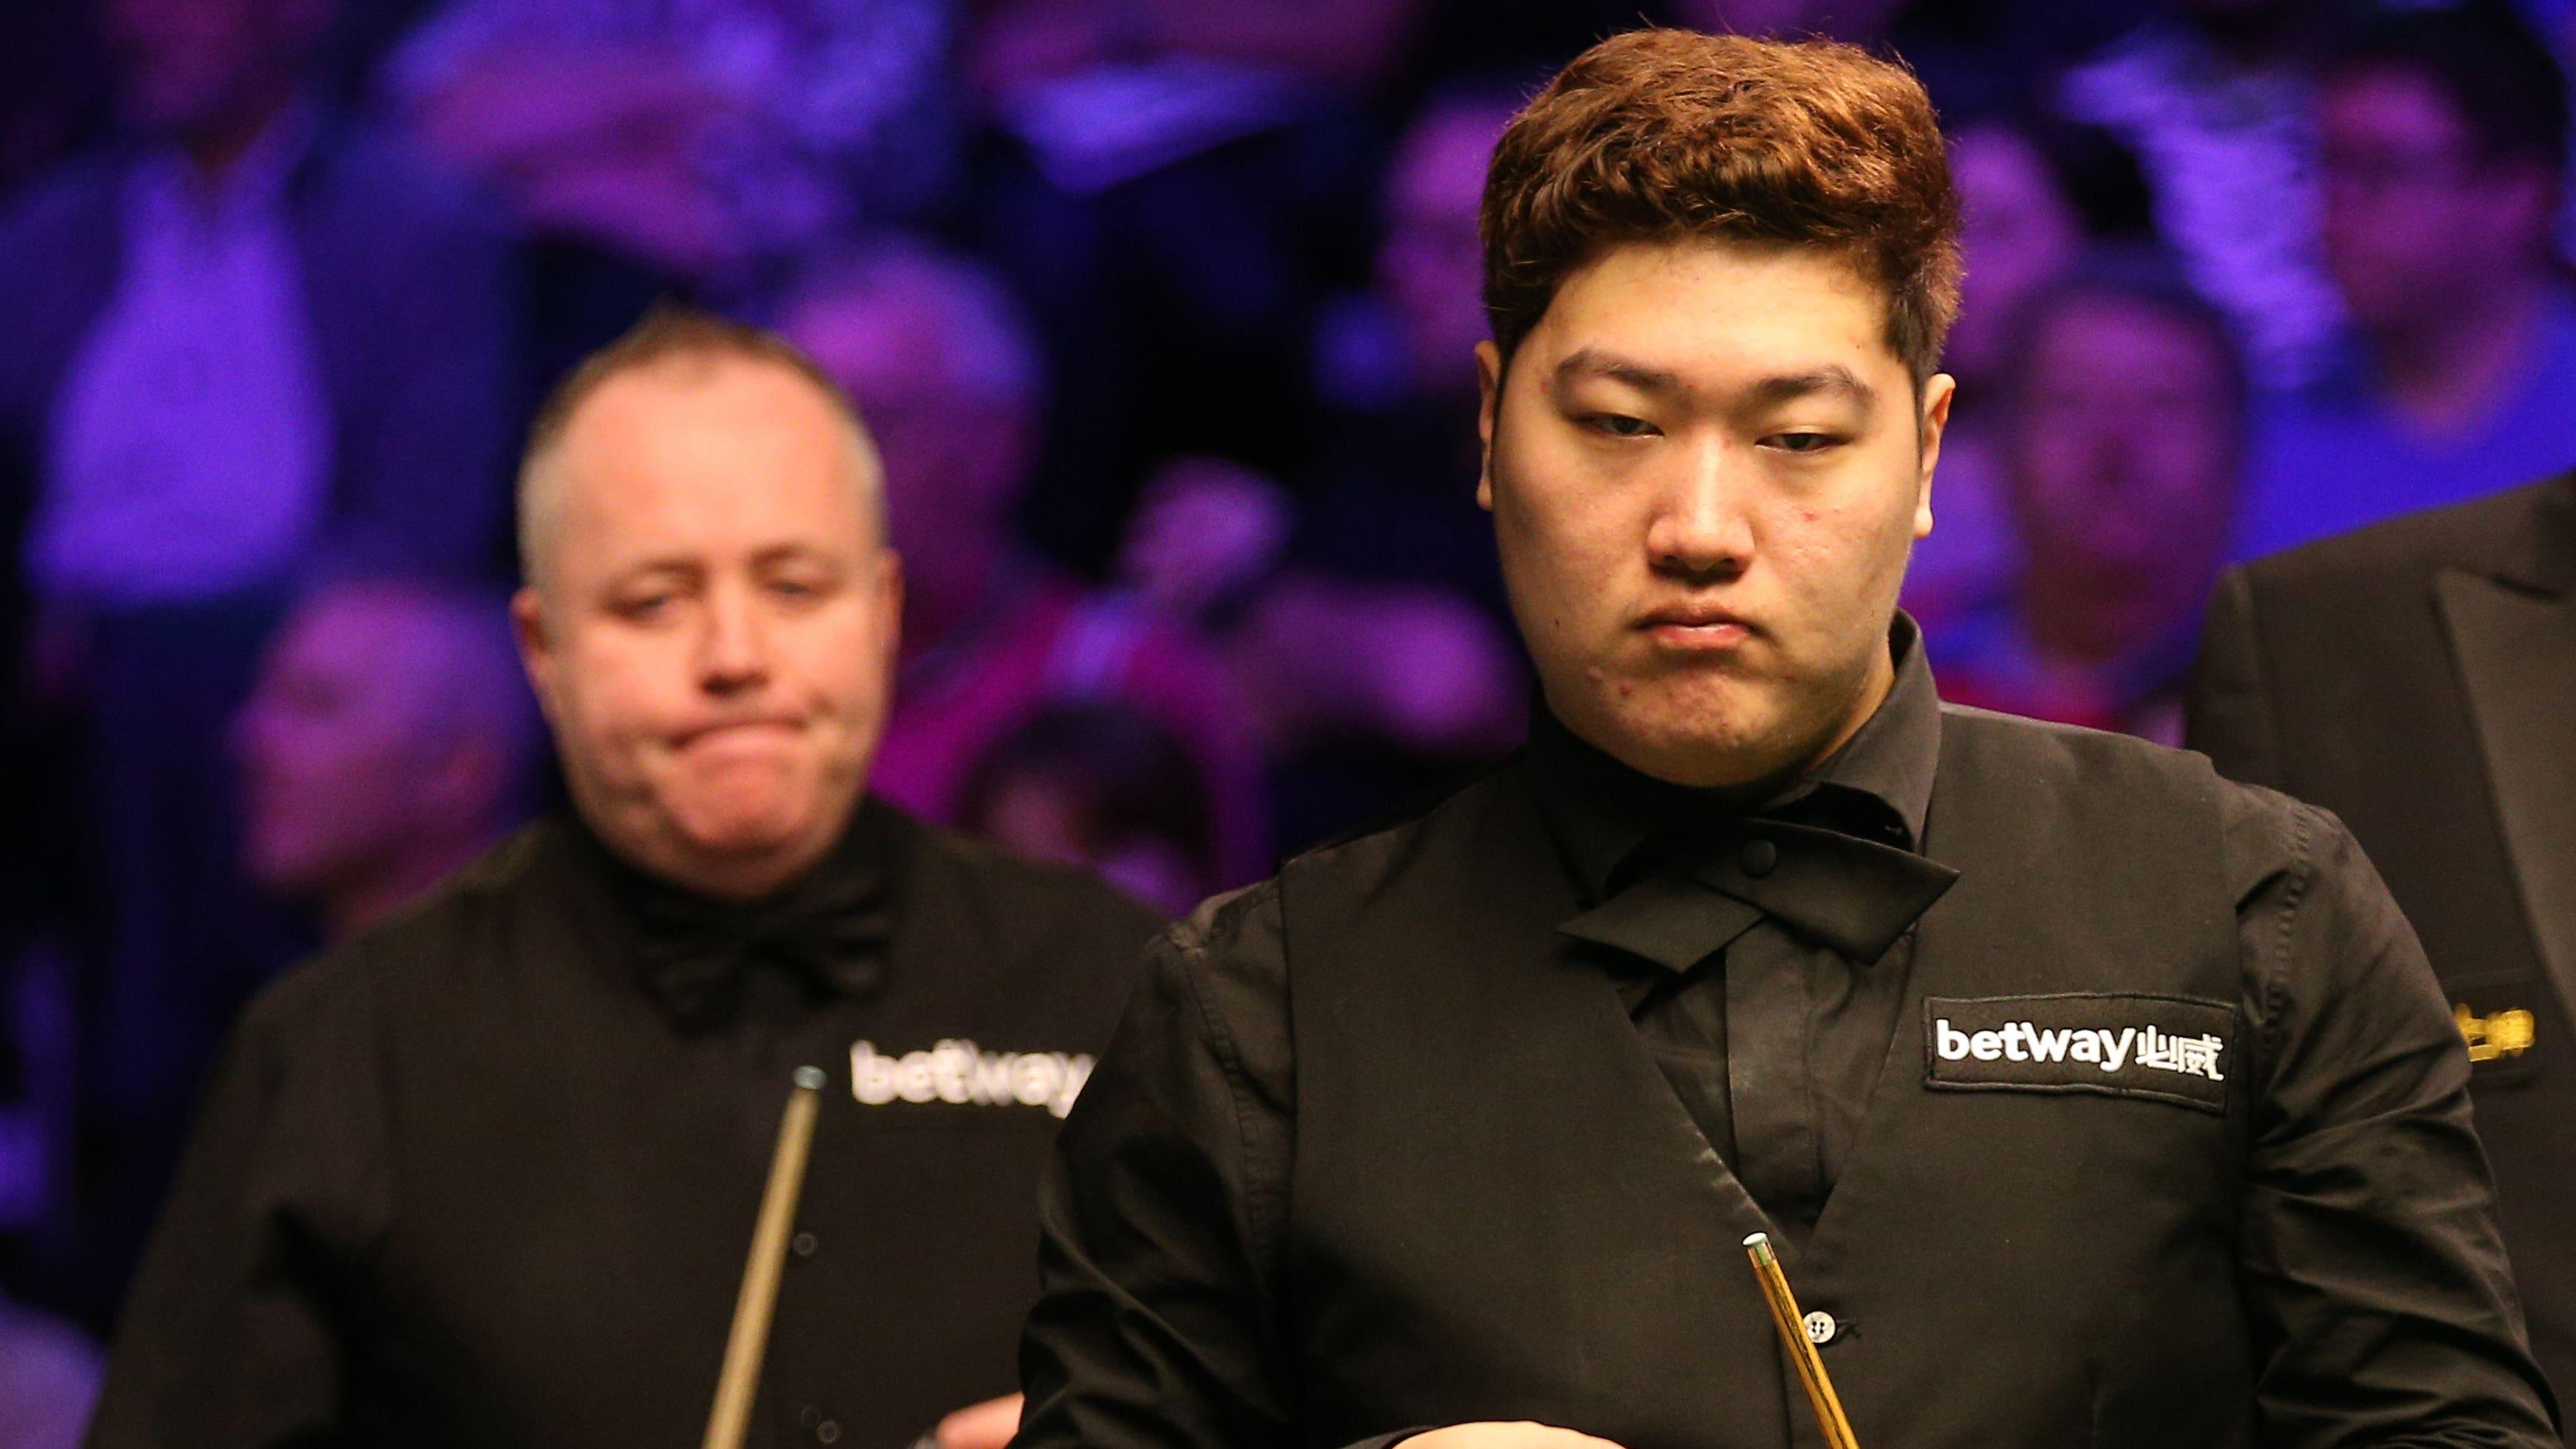 Yan Bingtao to face John Higgins in Masters final after defeating Stuart Bingham